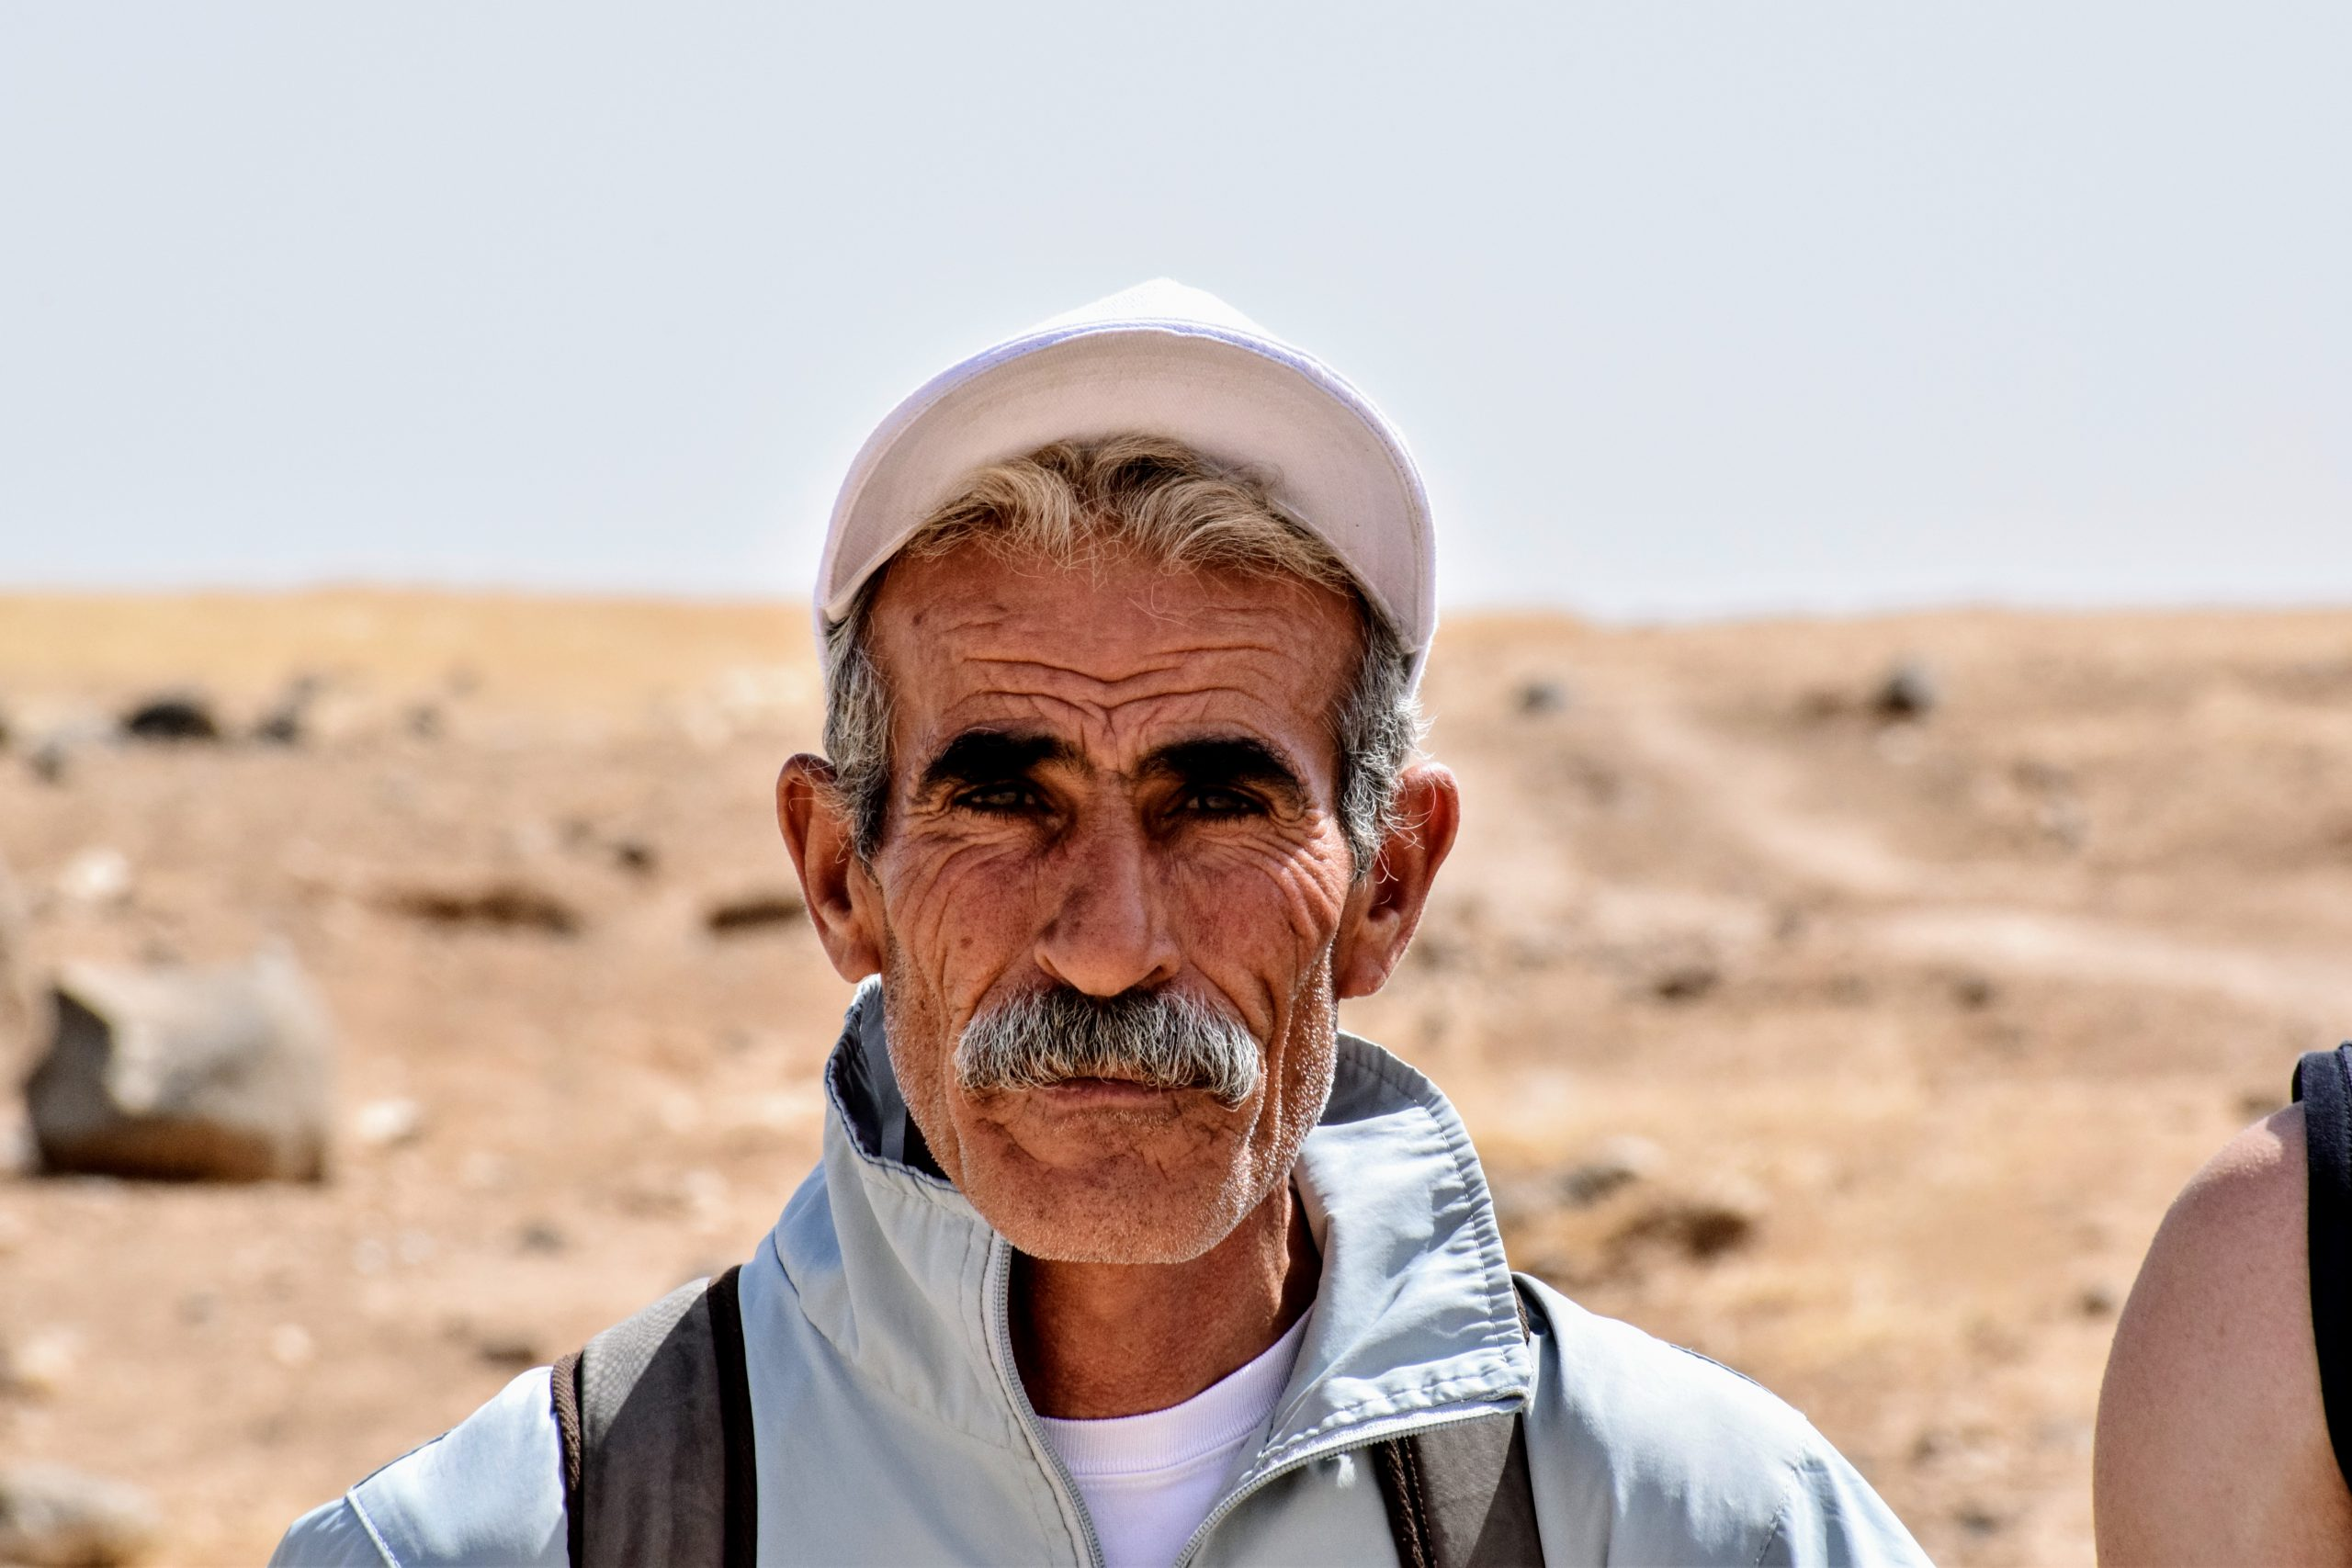 Close portrait of Jordanian man